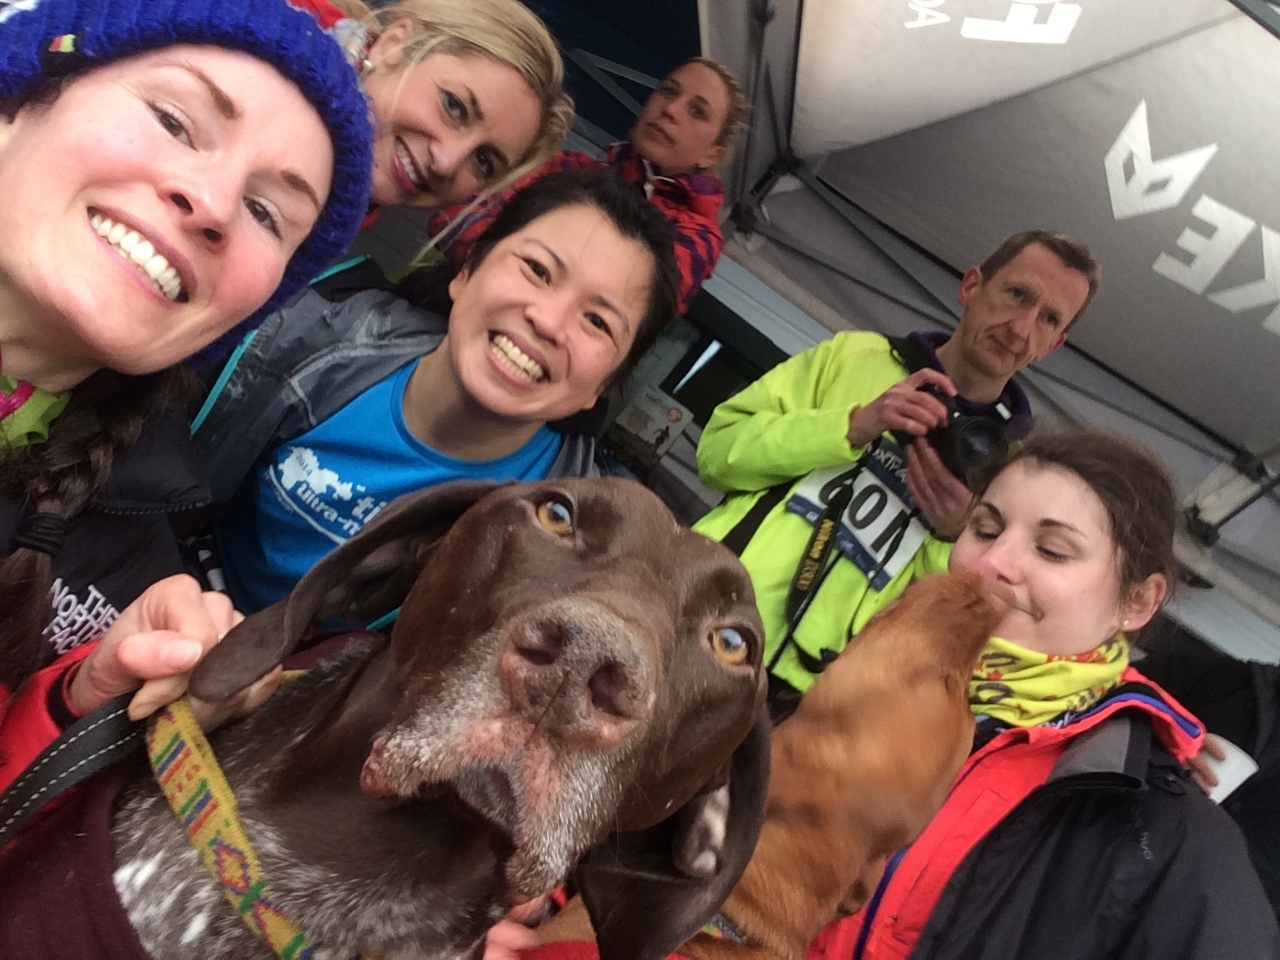 The compulsory selfie with some amazing and inspirational souls (dogs included in that statement)